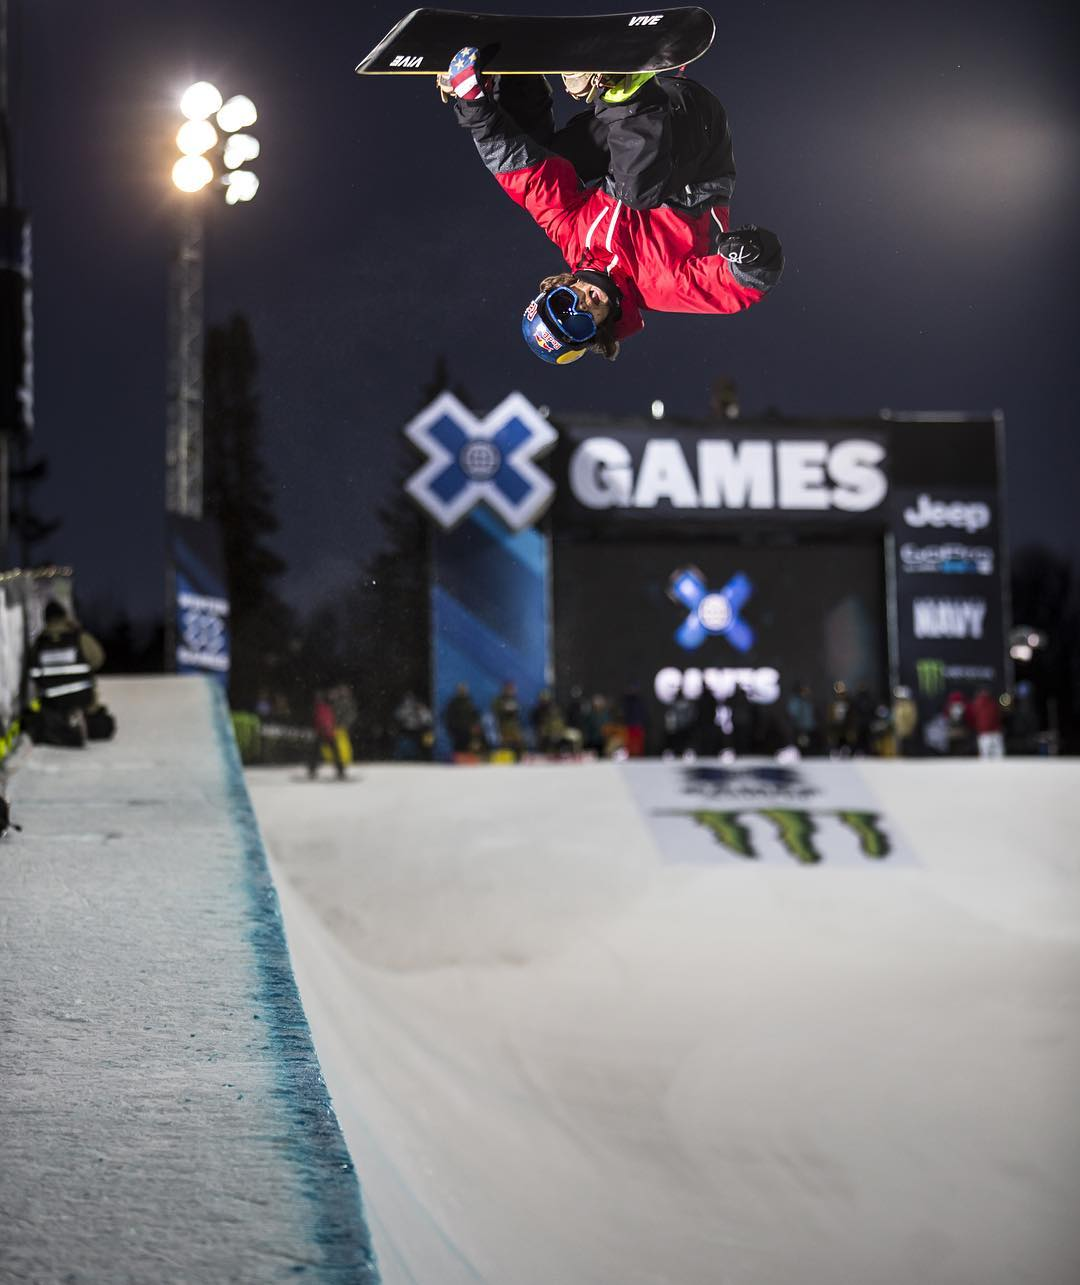 Three-time medalist and @ToyotaUSA athlete @LouieVito will compete in Snowboard SuperPipe today! #TeamToyota (